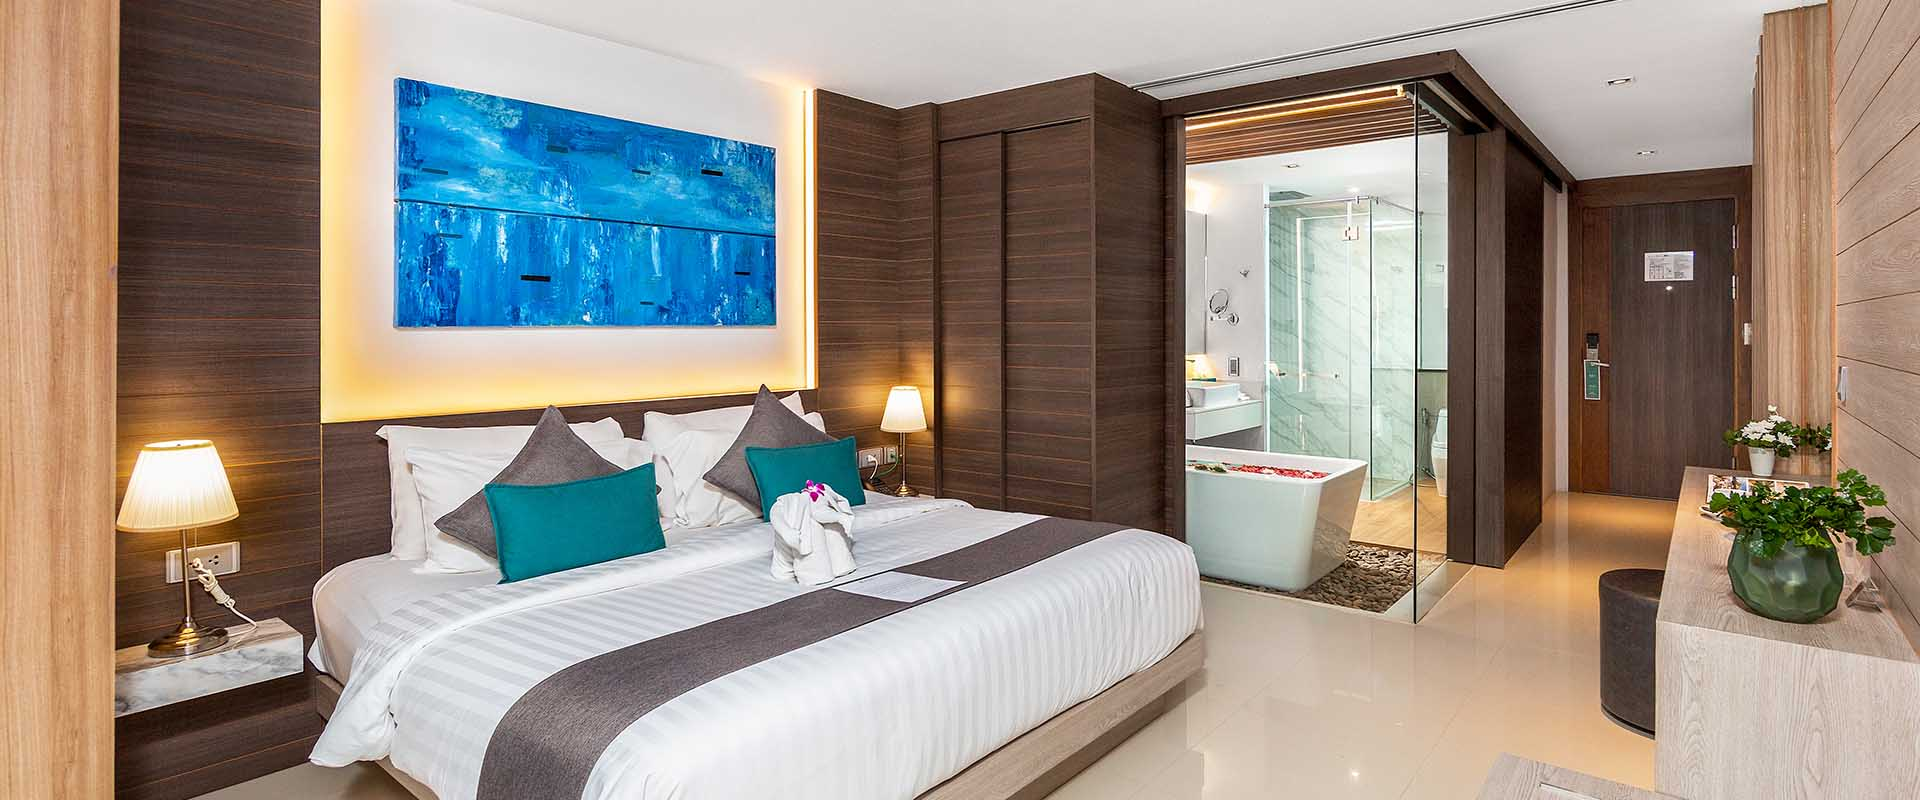 Premier Deluxe Rooms in Patong